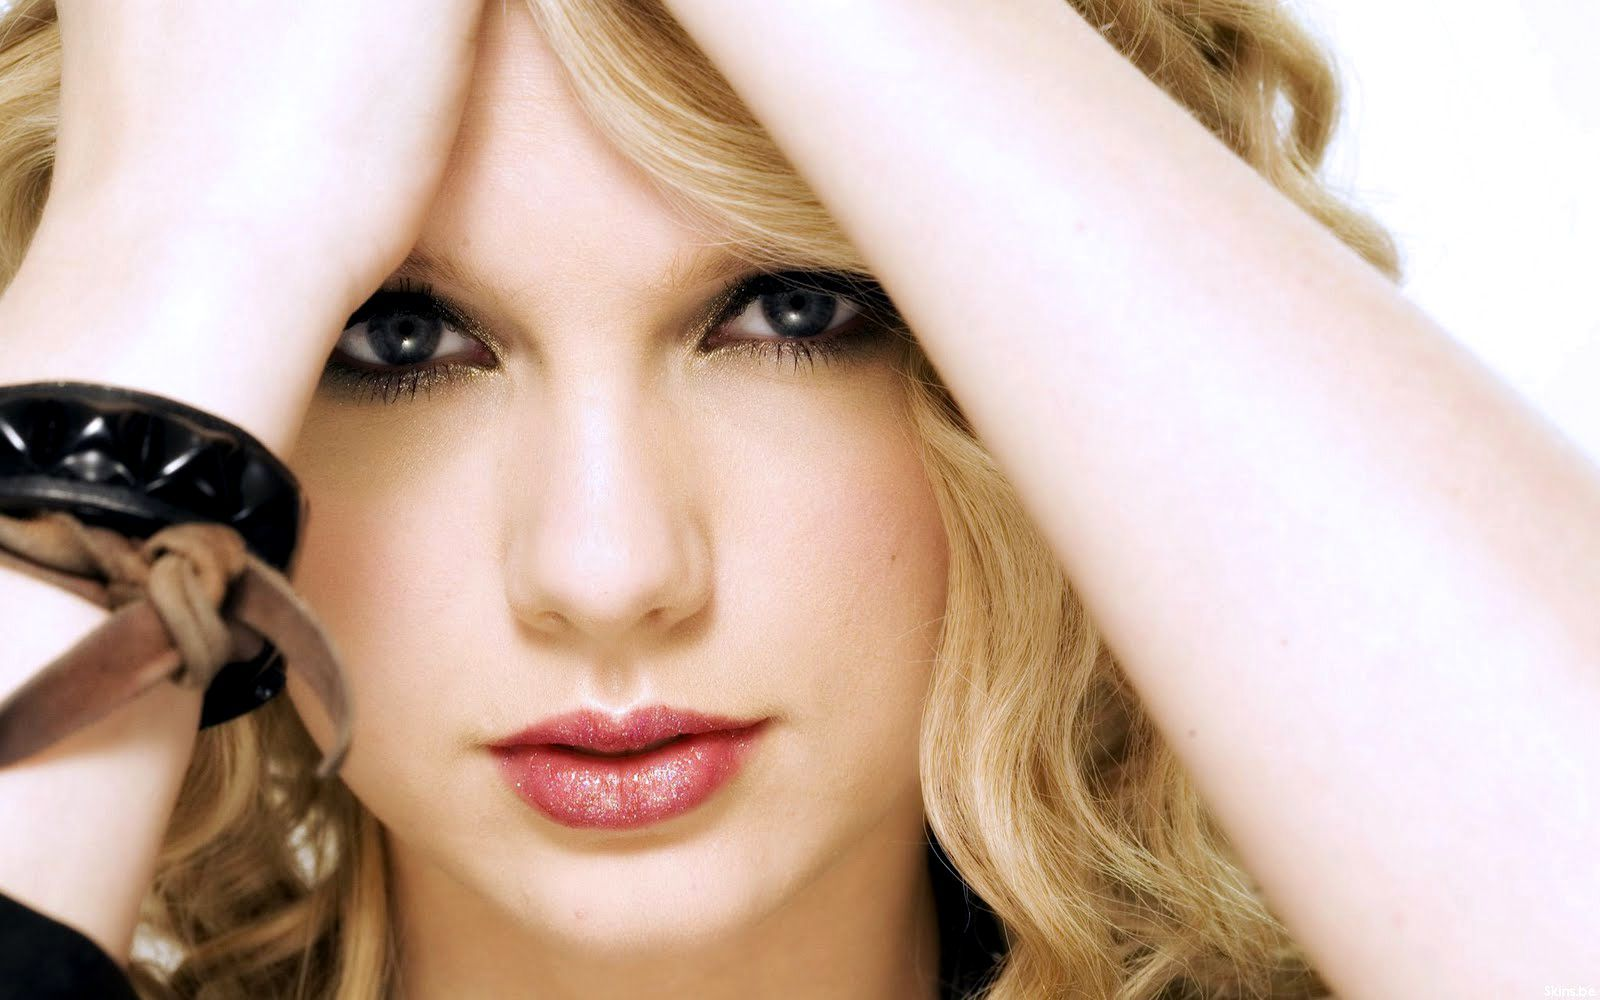 Taylor Swift Widescreen Wallpapers | wallgem|Free Download 4k ...